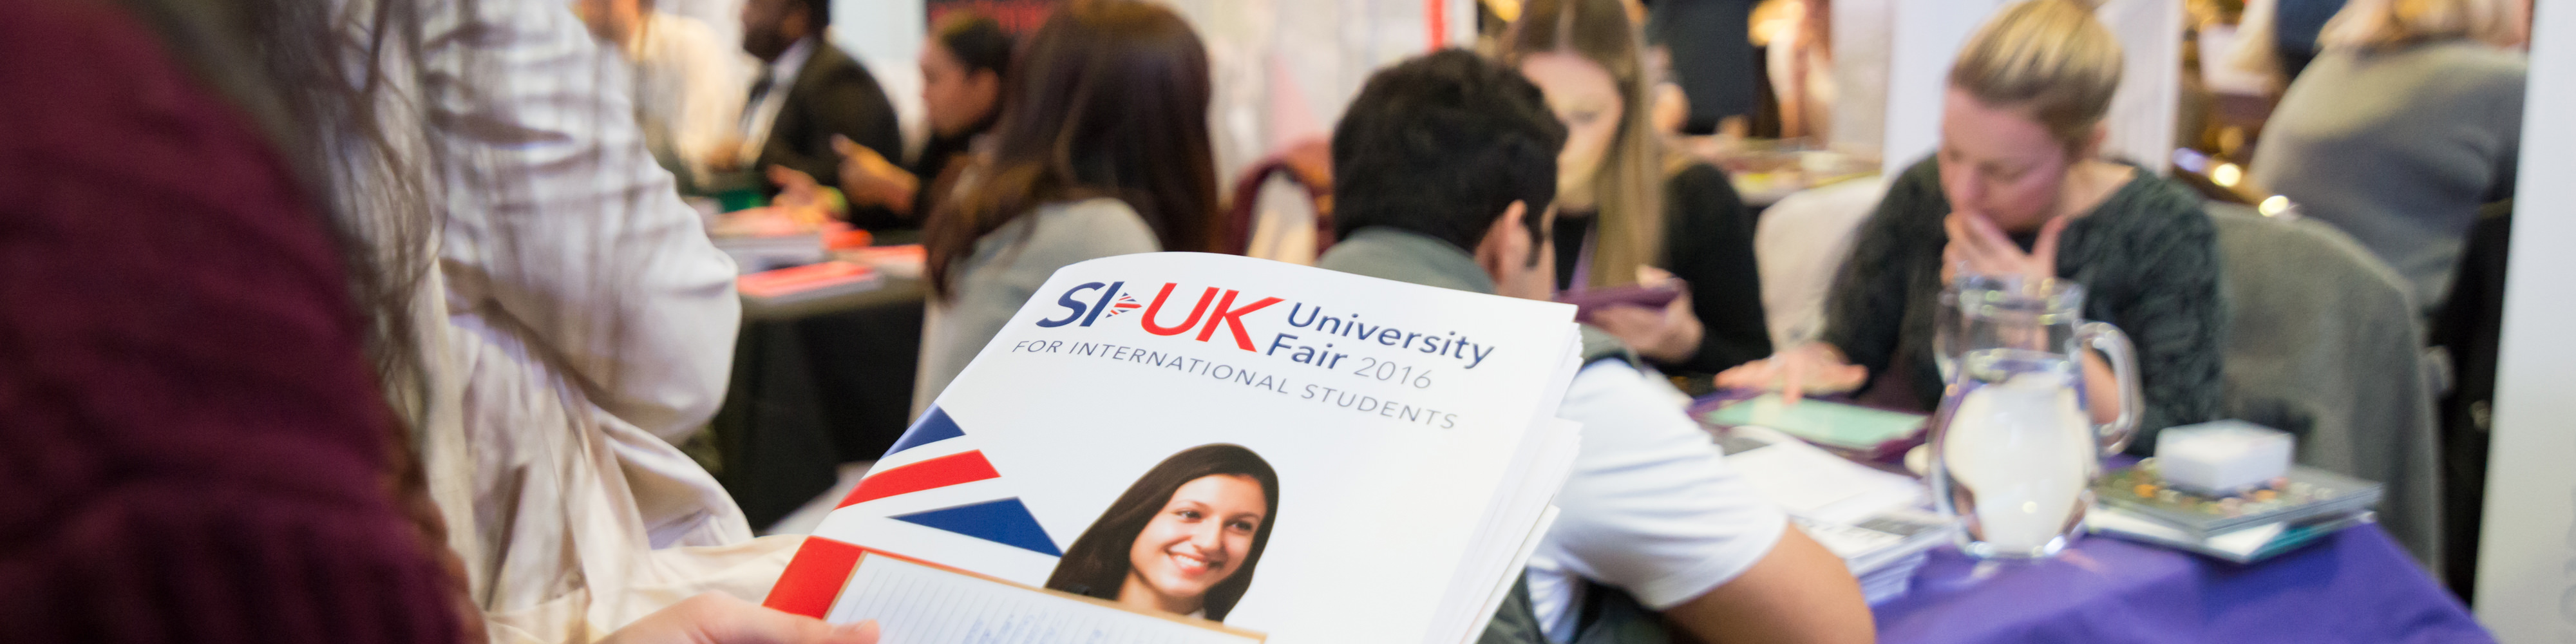 Manchester University Fair Registration | UK University Fair Manchester 2017